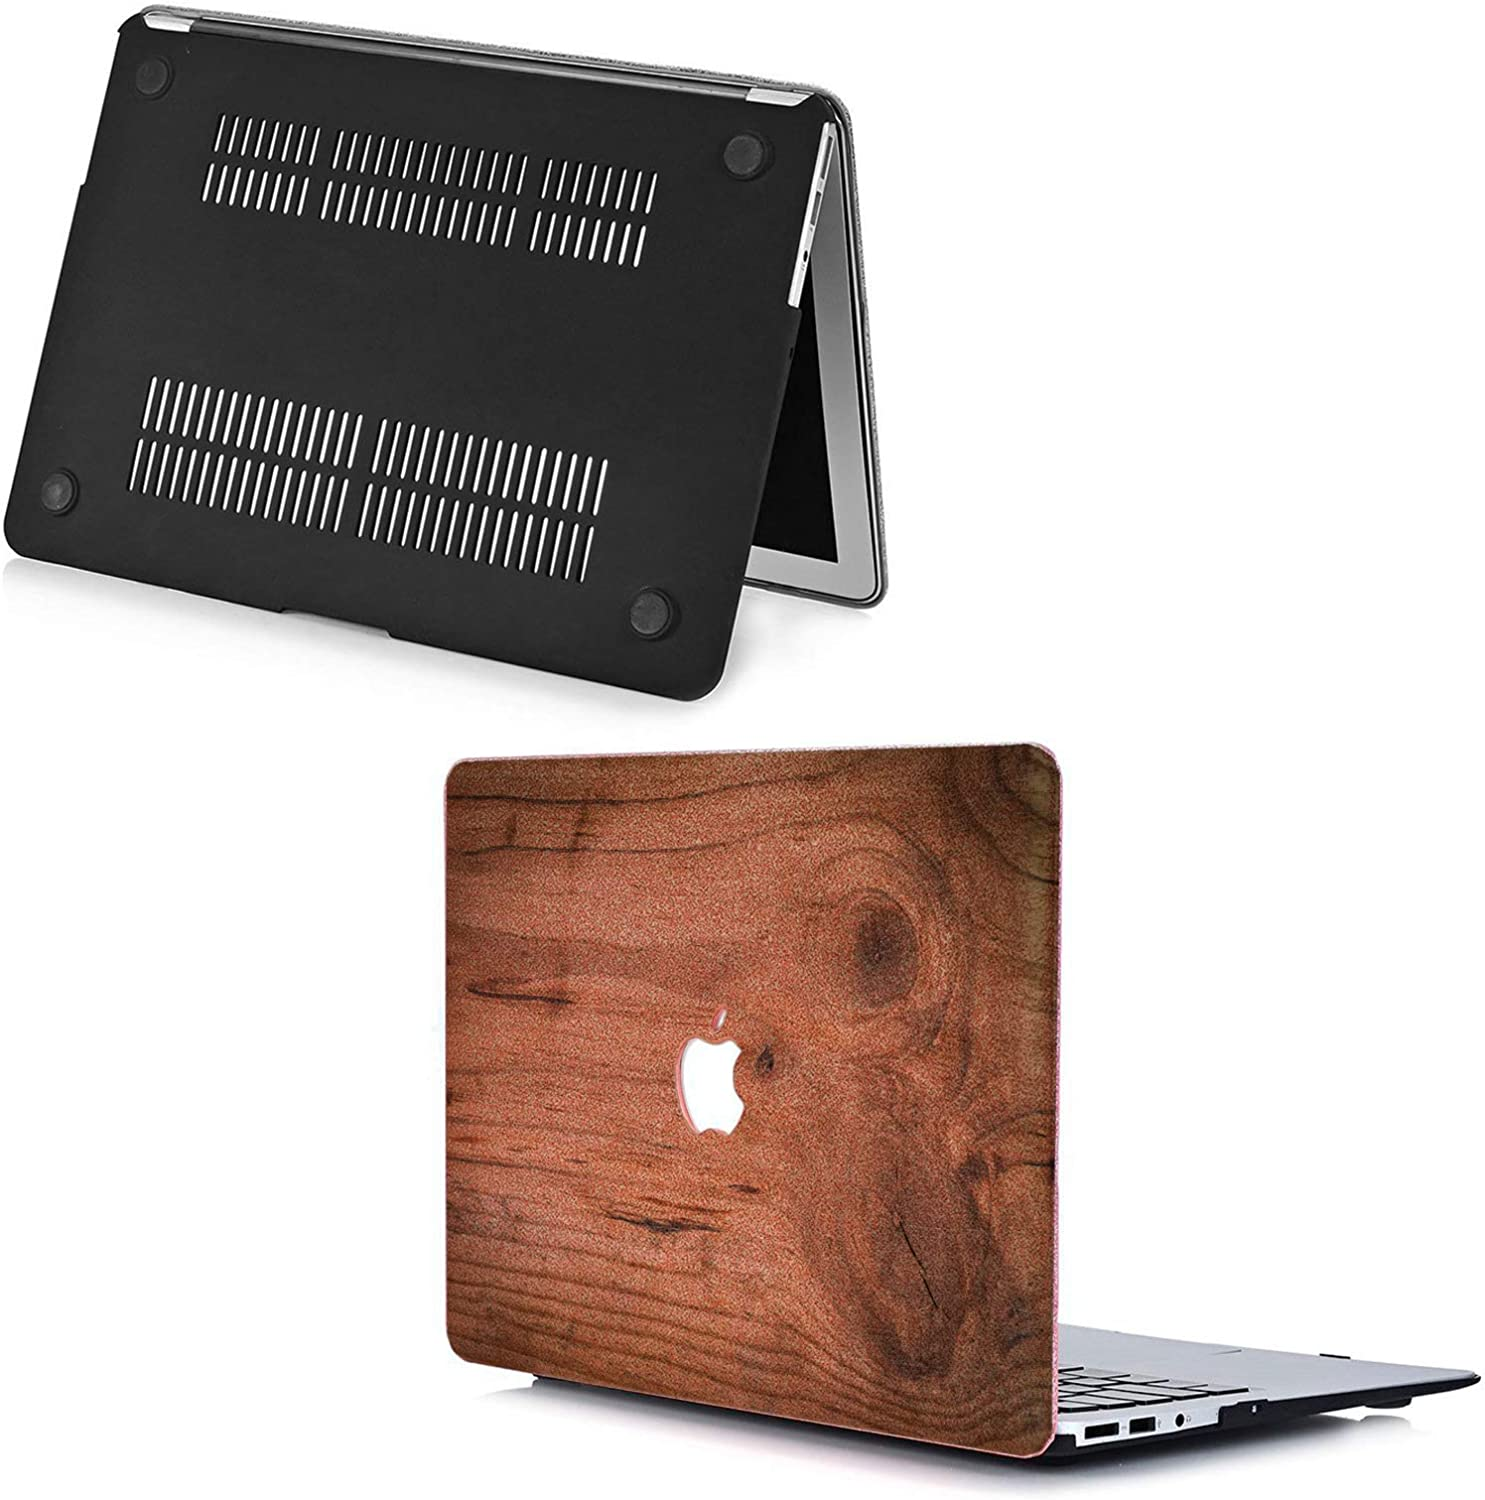 Cavka Hard Glitter Case for Apple MacBook Pro 13 2019 Retina 15 Mac Air 11 Mac 12 Bling Sparkly Wood Shiny Especial New Cover Glossy Design Beautiful Rose Gold Elegant Silver Print Nature Texture